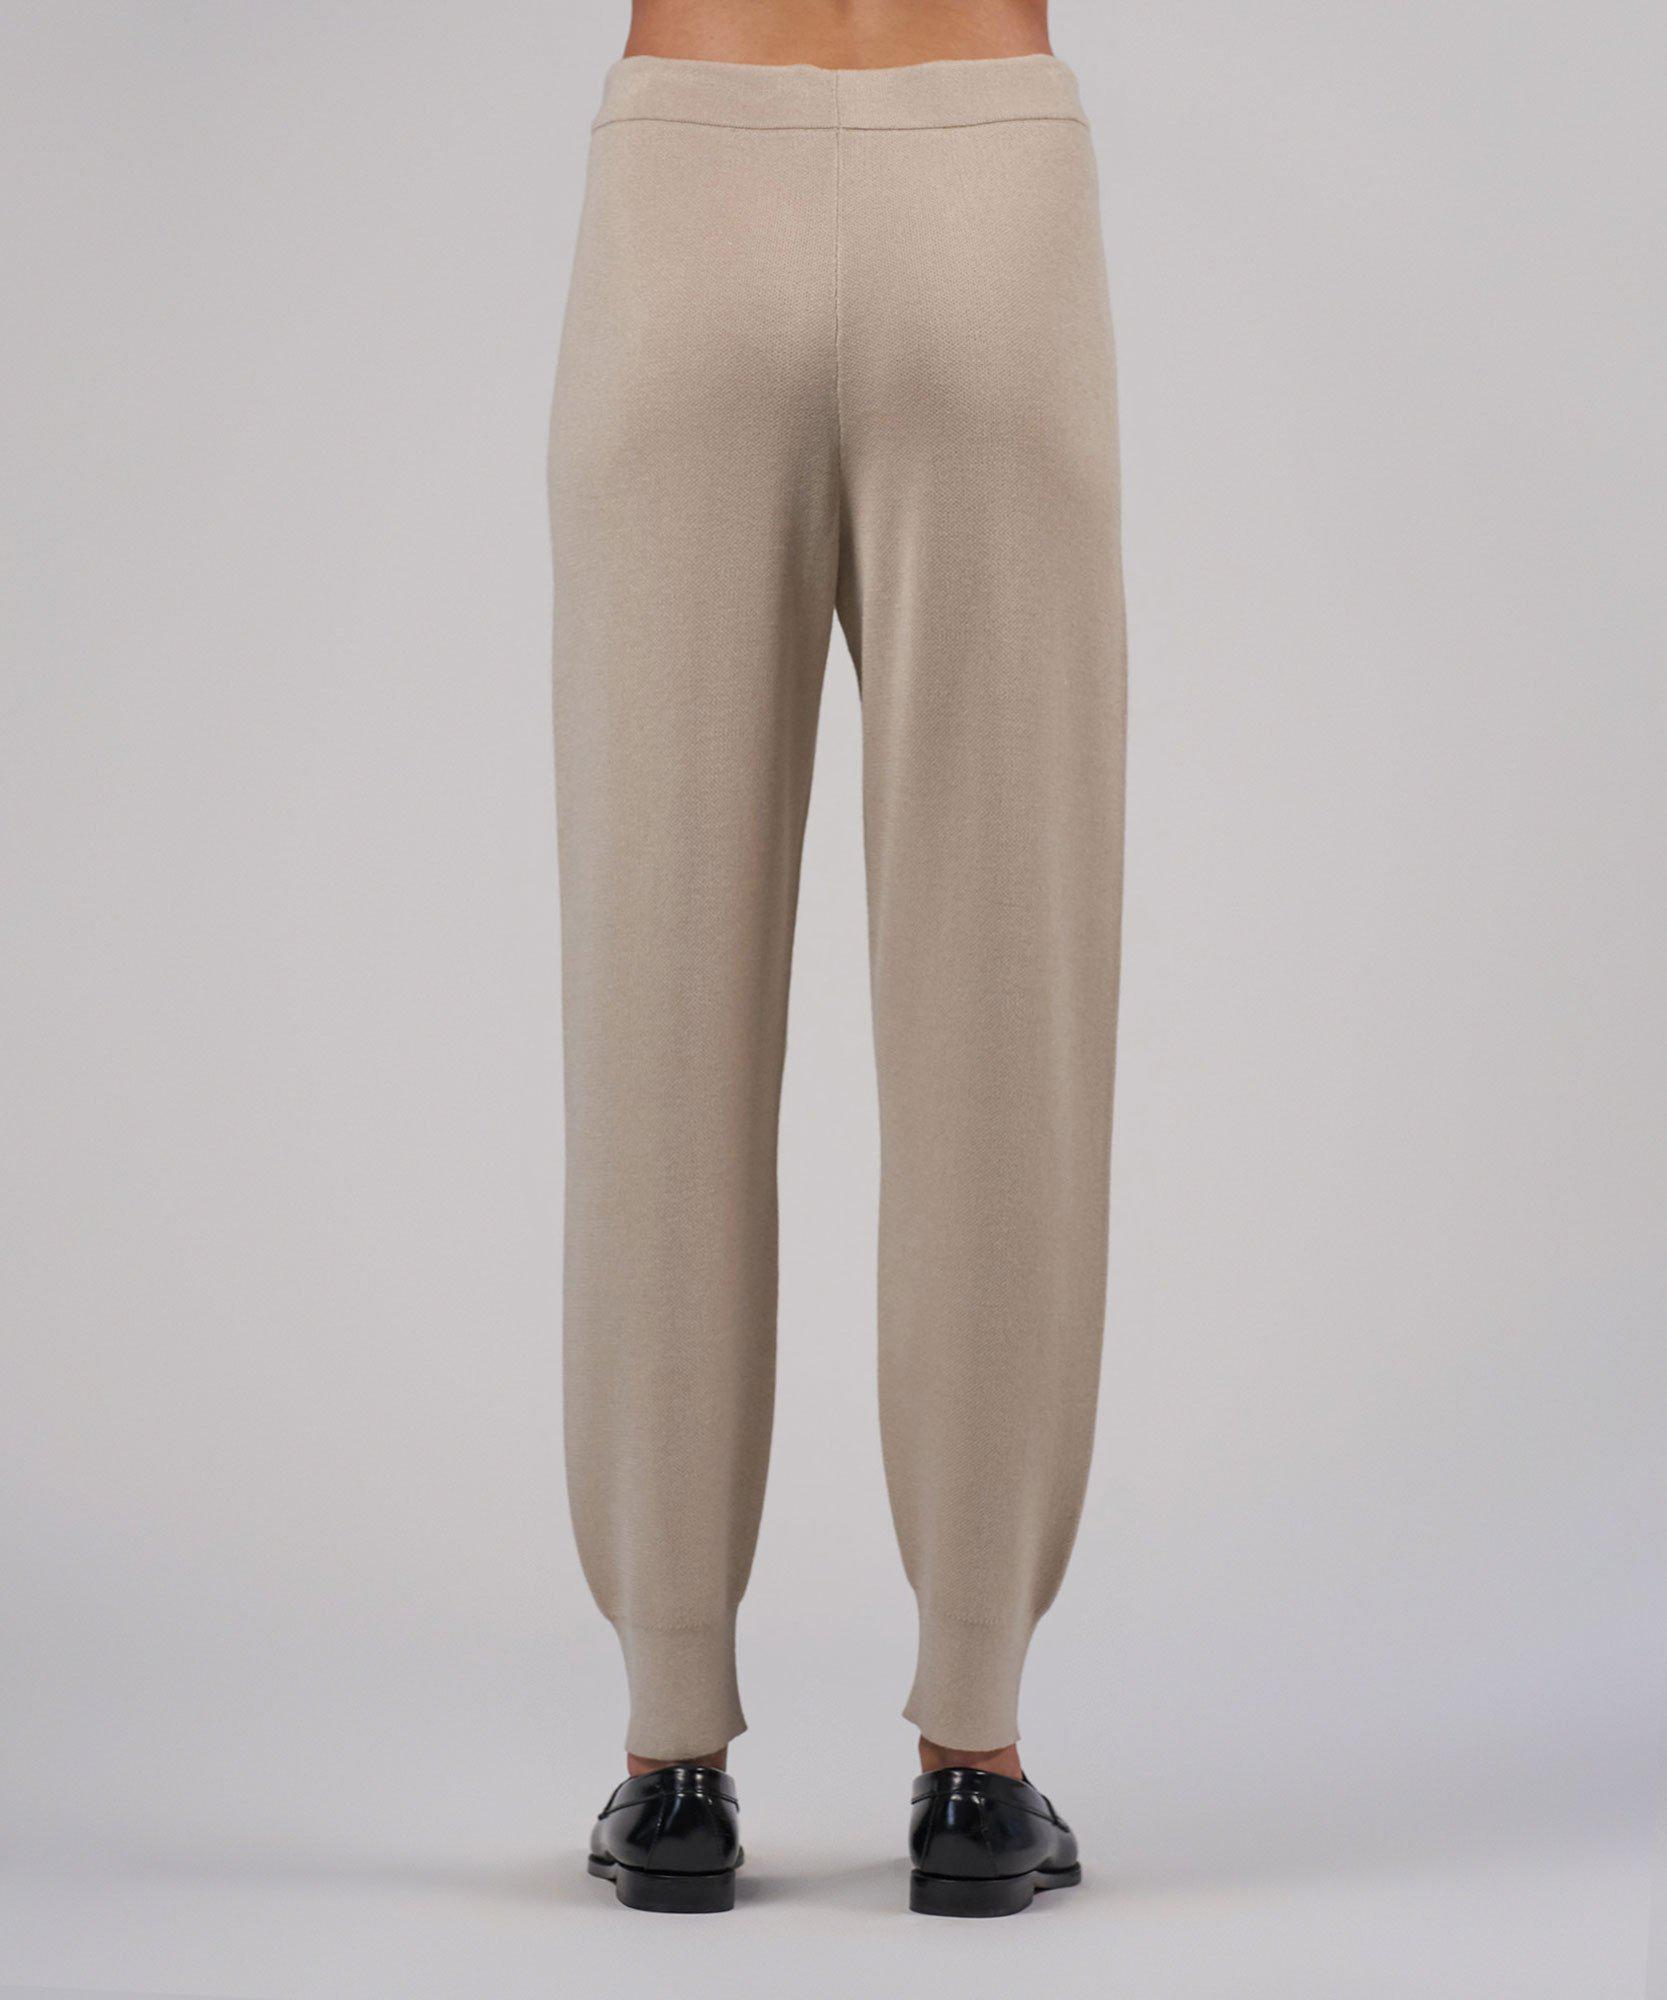 Cashmere Silk Pull-On Pant - Canvas 2